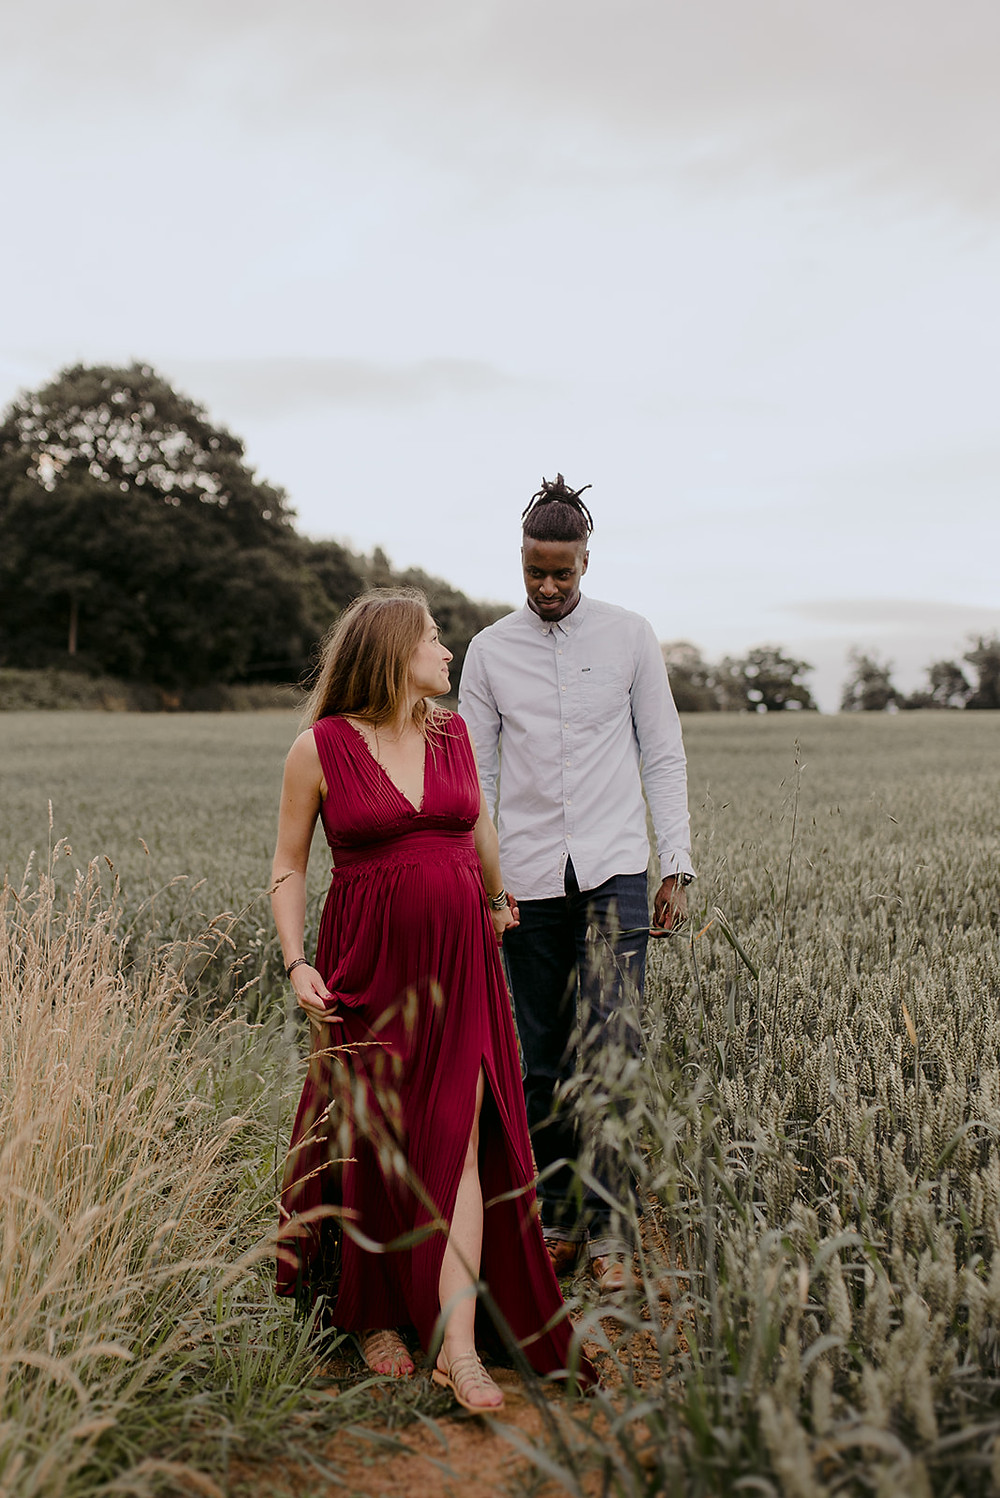 outdoor maternity photography warwickshire